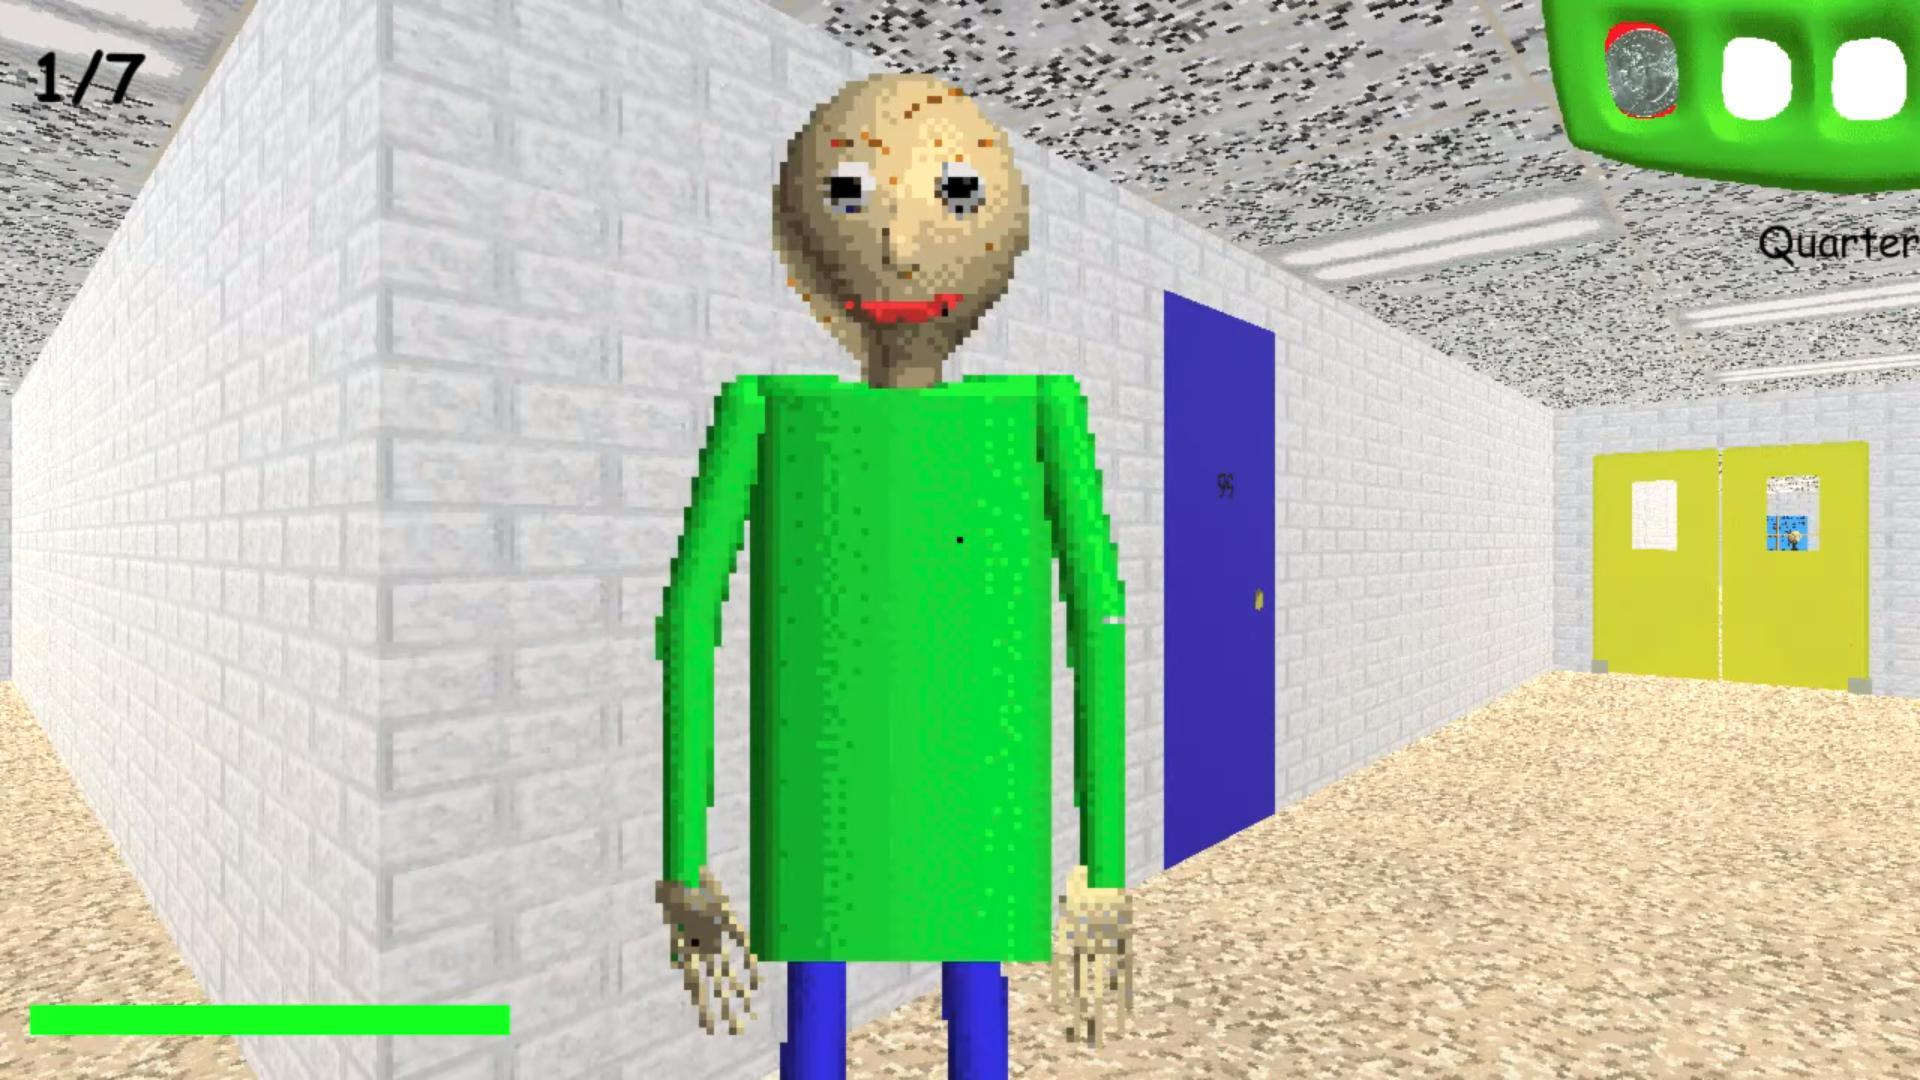 baldis basics in education and learning download free windows